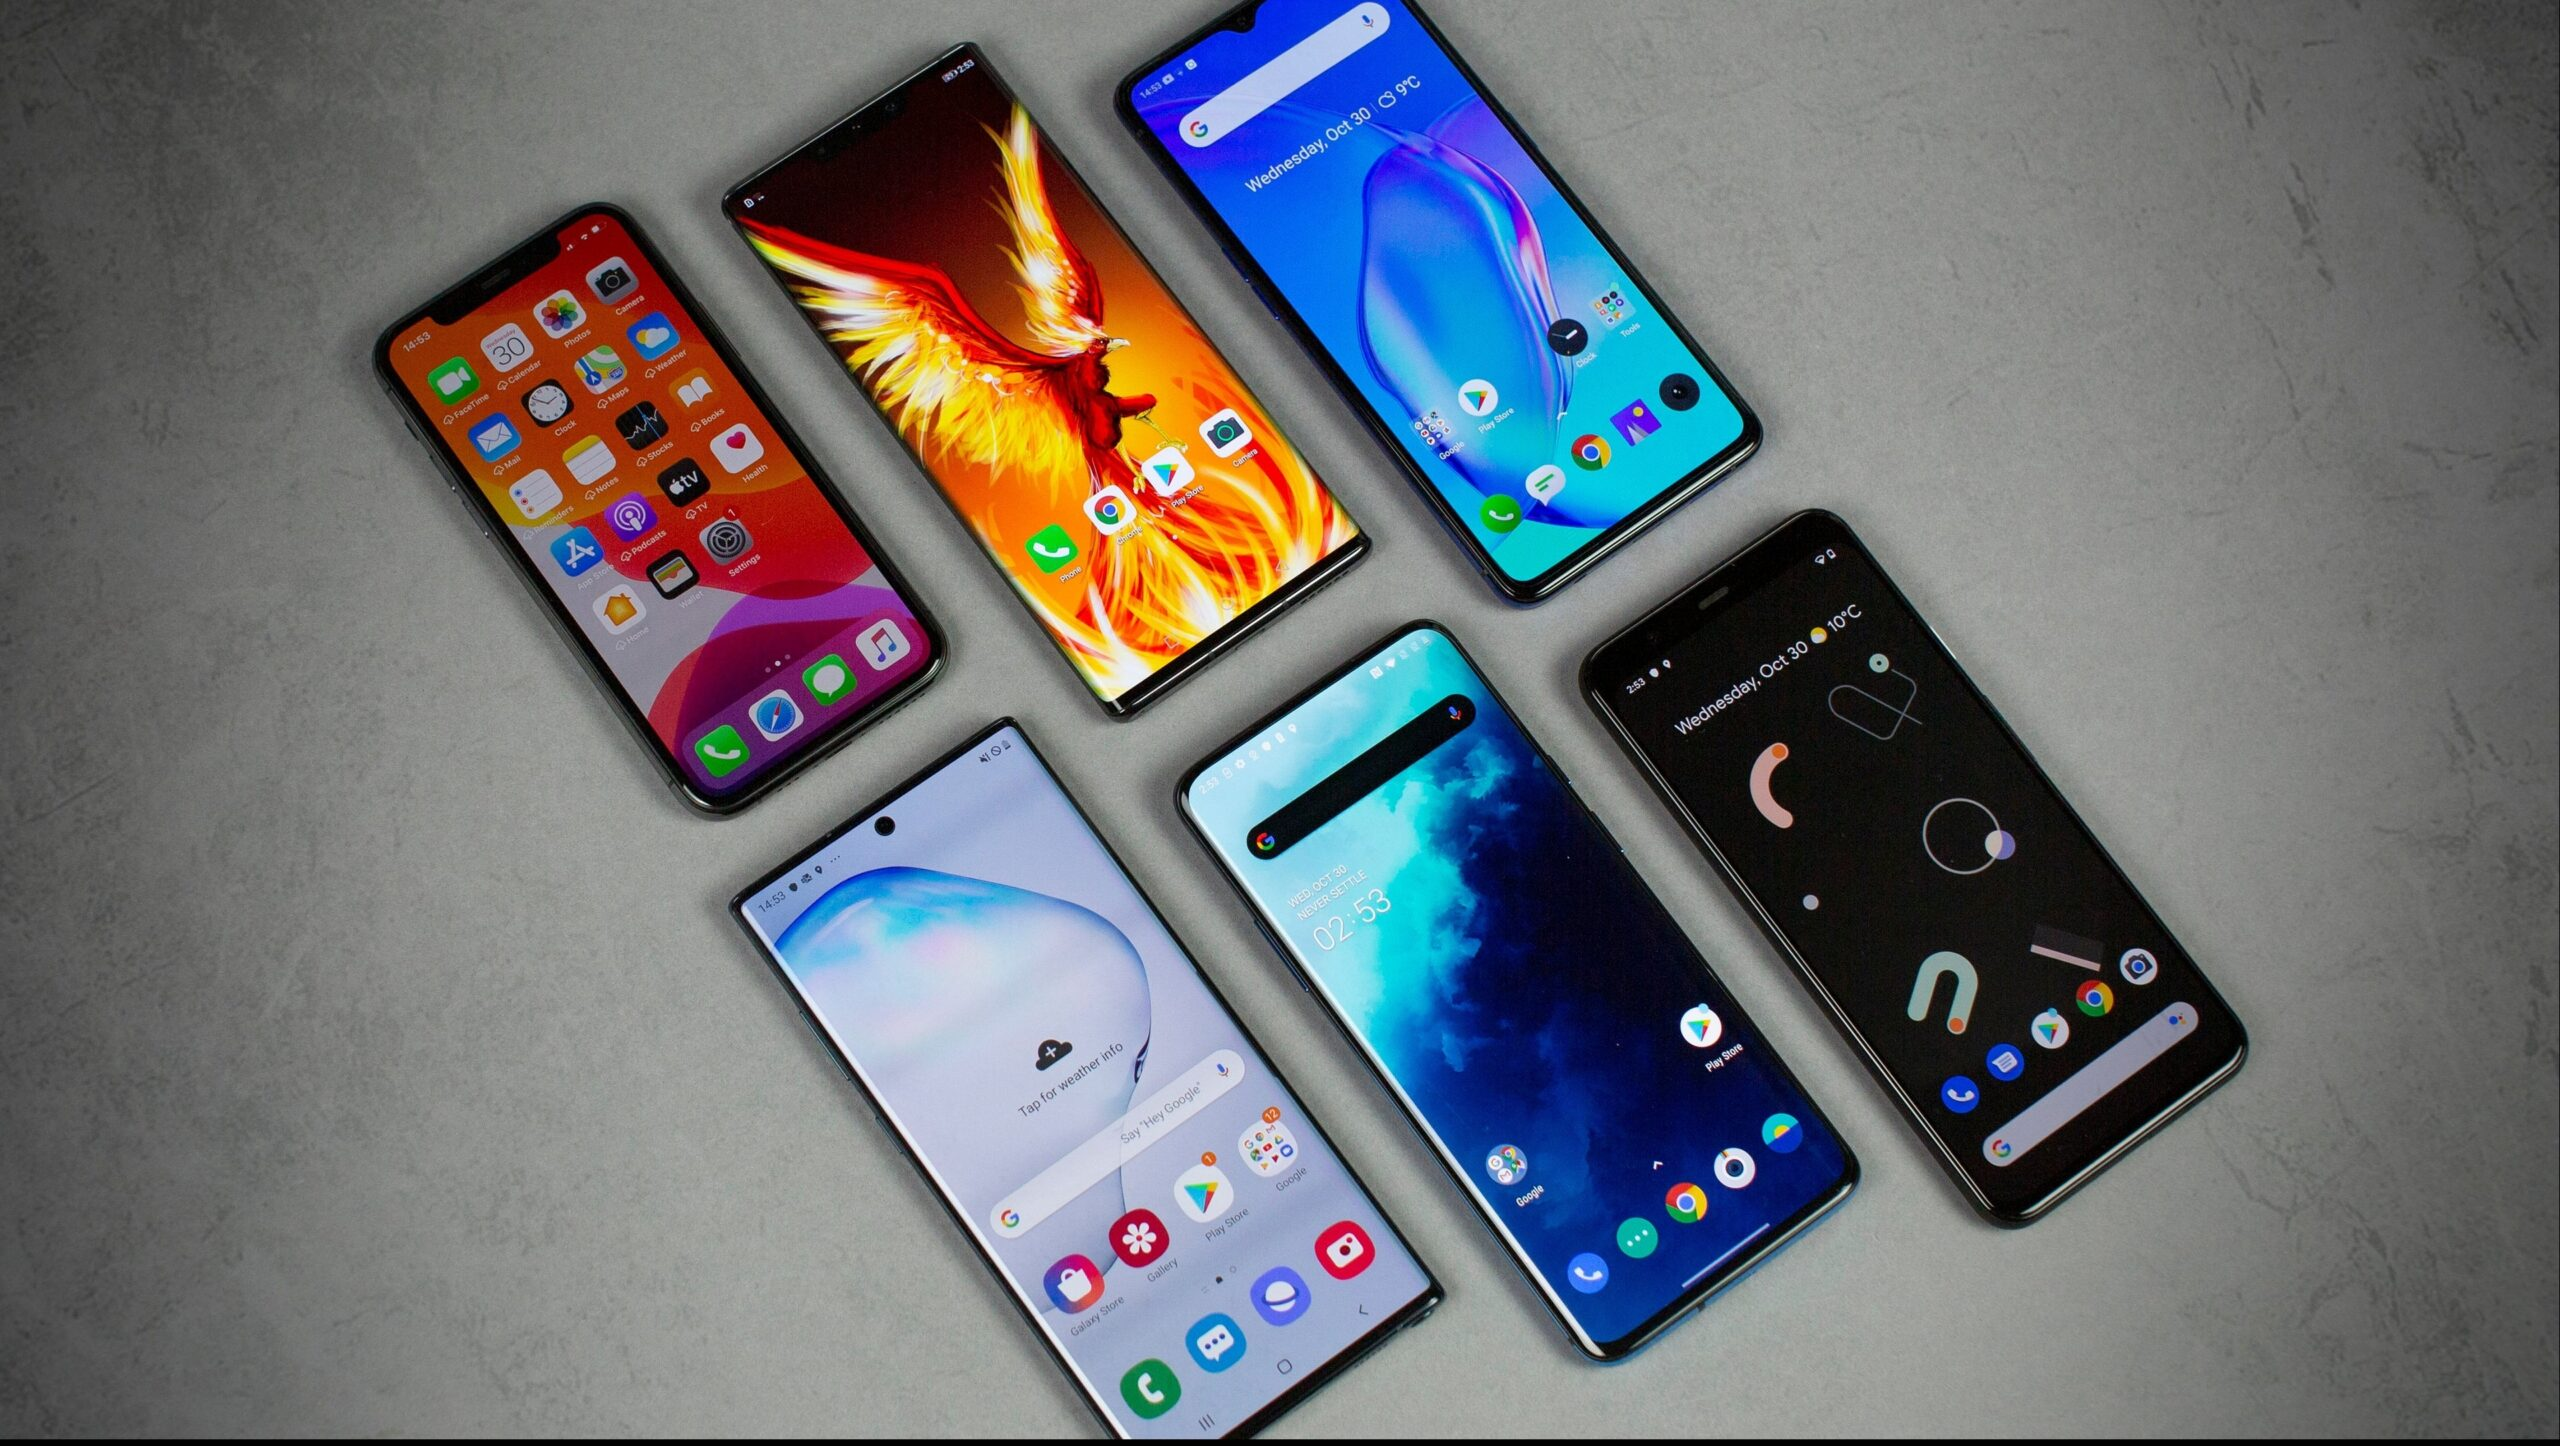 How to choose the best smartphone?